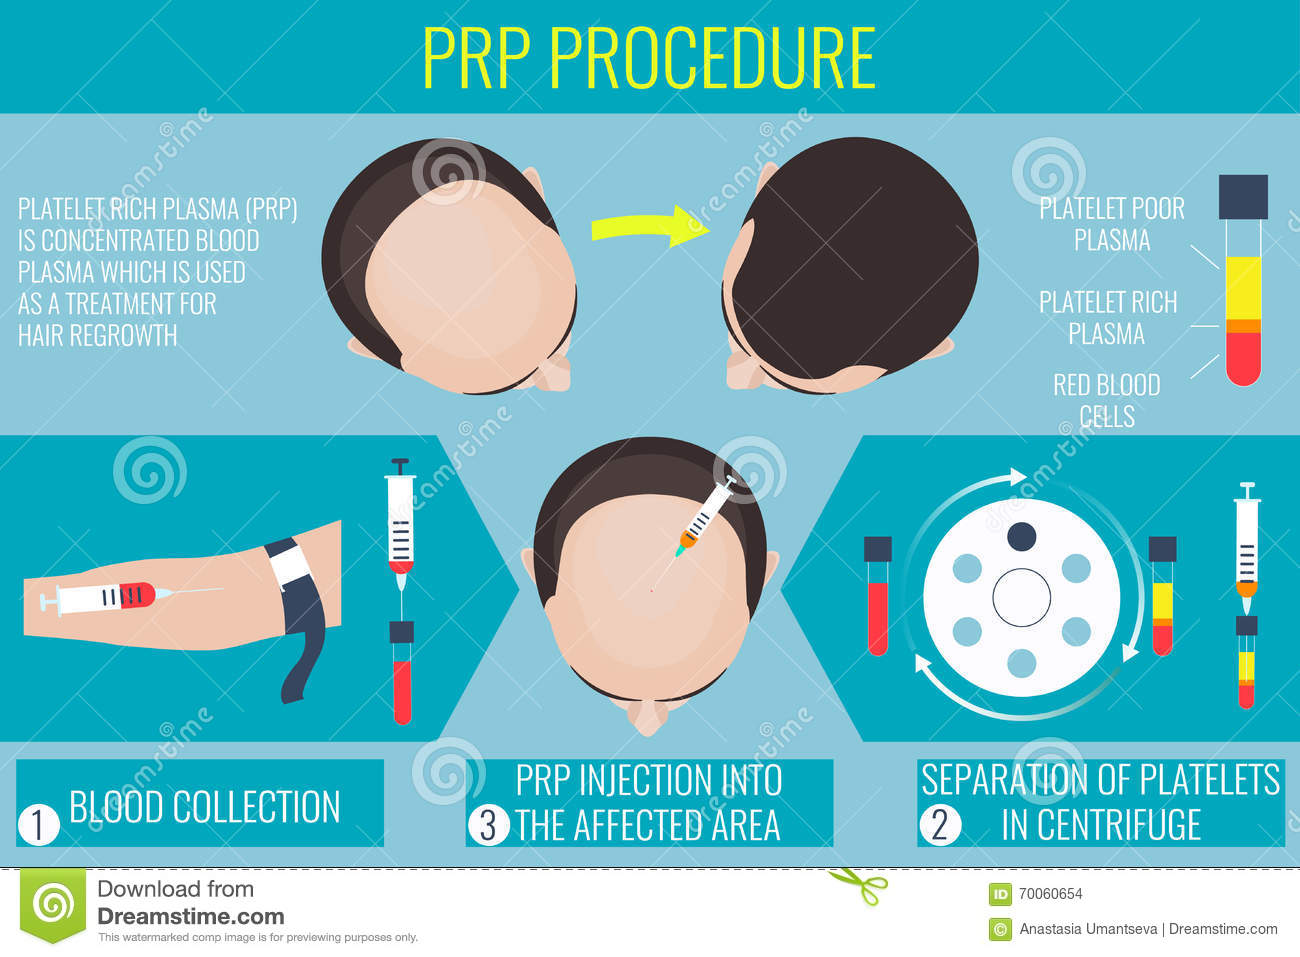 platelet rich plasma thesis Platelet rich plasma (prp) is a popular autologous biological therapy used for the treatment of this thesis is presented in a format that contains a journal publication as the central portion of the document (chapter 2.